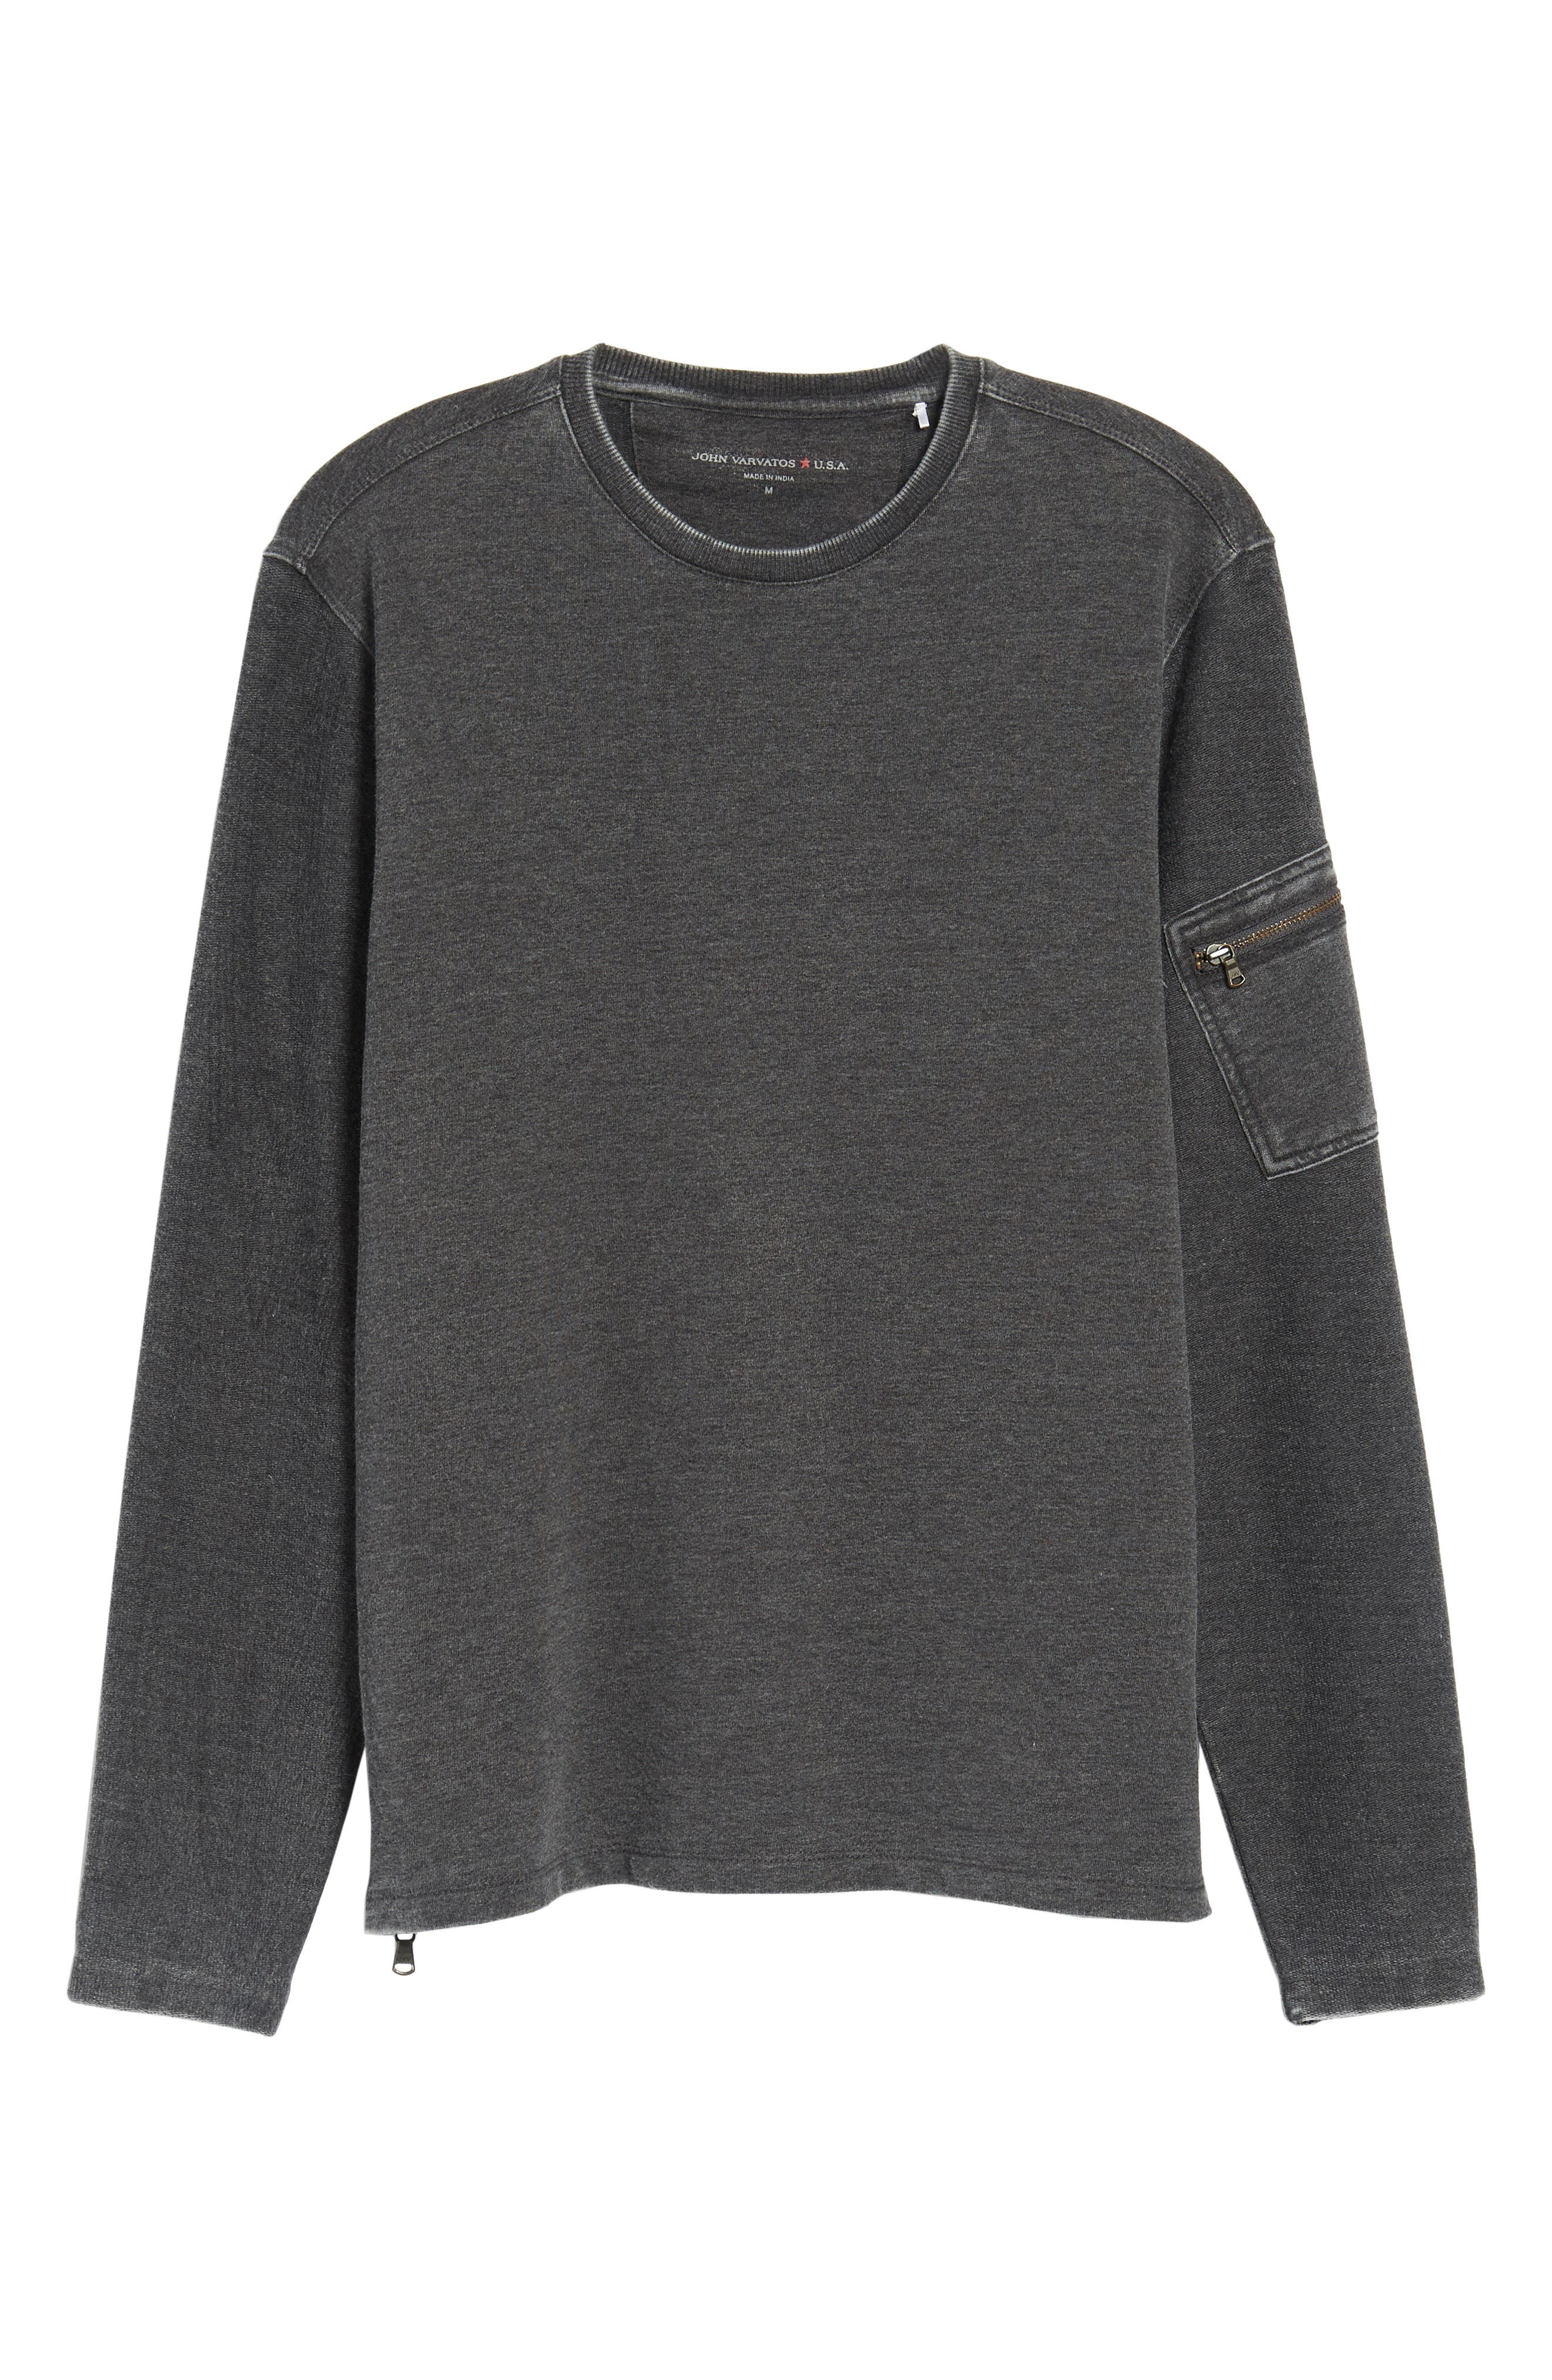 French Terry Crewneck Sweater,                             Alternate thumbnail 6, color,                             032